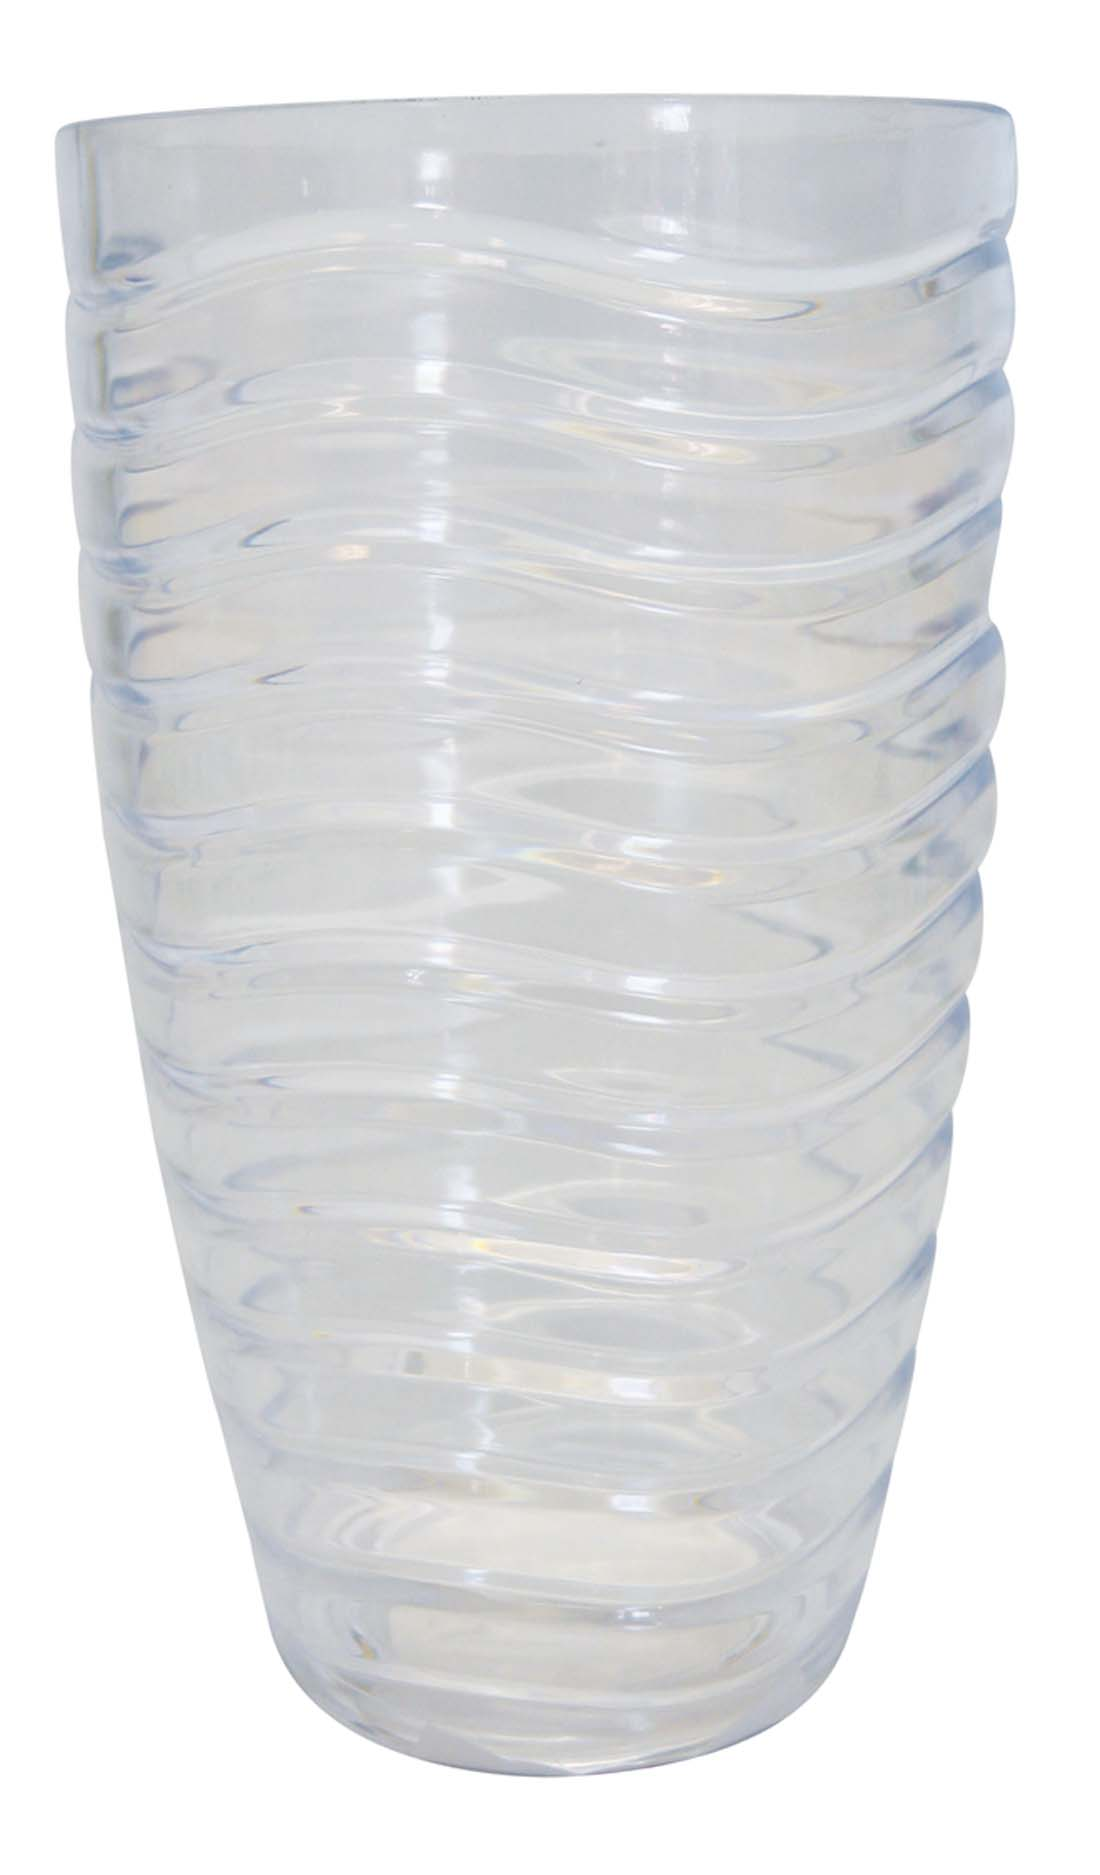 View DRINKING CUP 21 OZ CRYSTAL PLASTIC